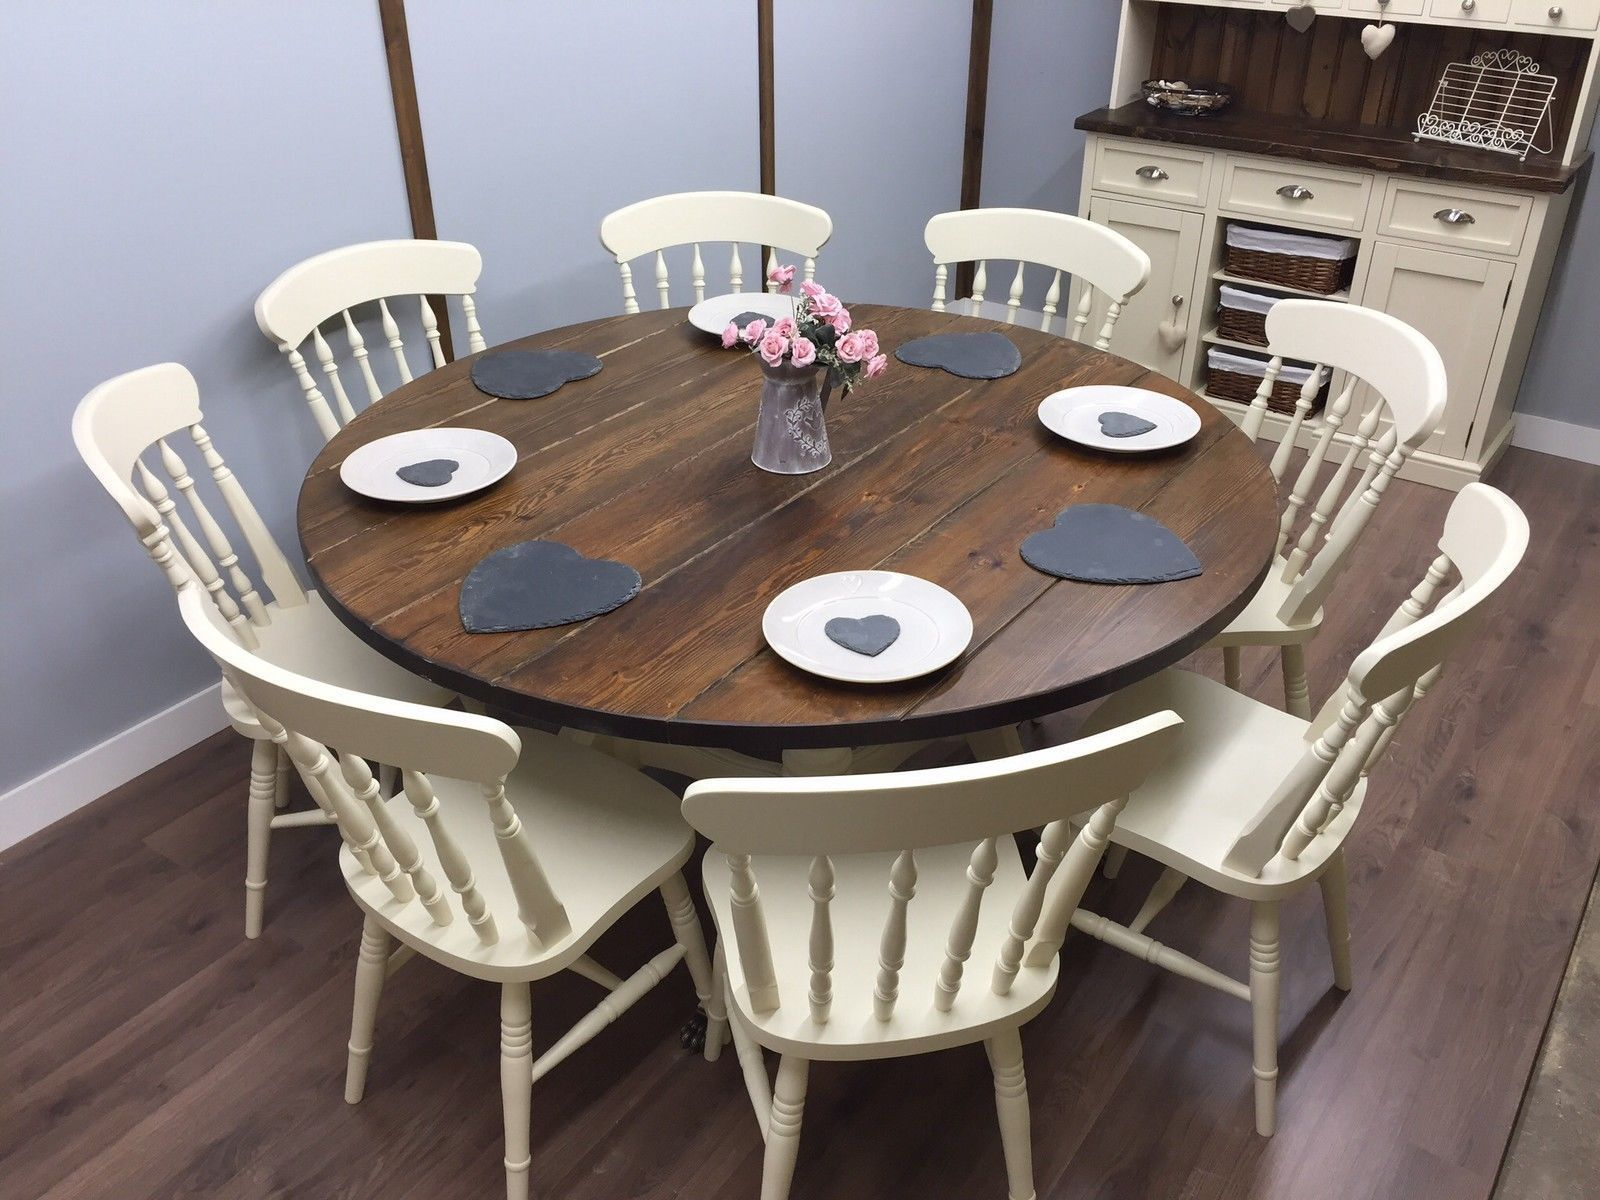 Flourish Your Home Appearance With Modern Round Dining Room Tables For 6 8 Large Round Dining Table Modern Round Dining Room Round Dining Table